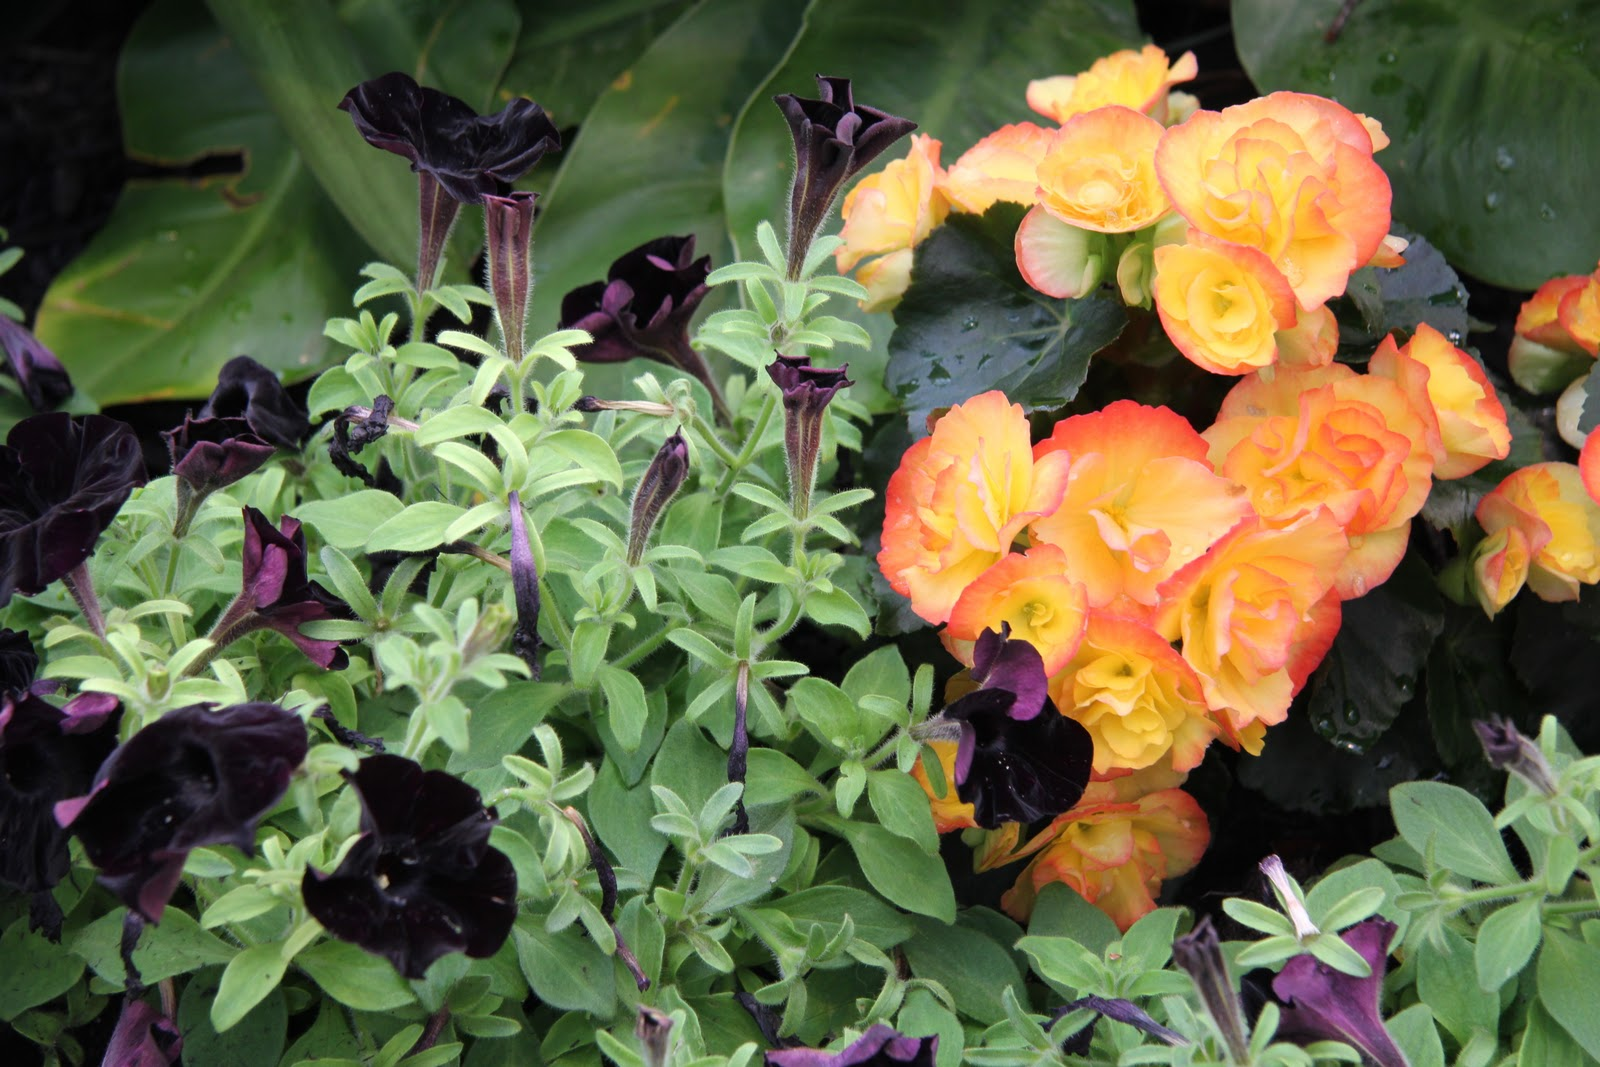 Hicks Nurseries In Westbury, NY Is One Of The Oldest Nursery And Garden  Centers On Long Island. I Love Going There To Just Wander Around The Vast  Array Of ...